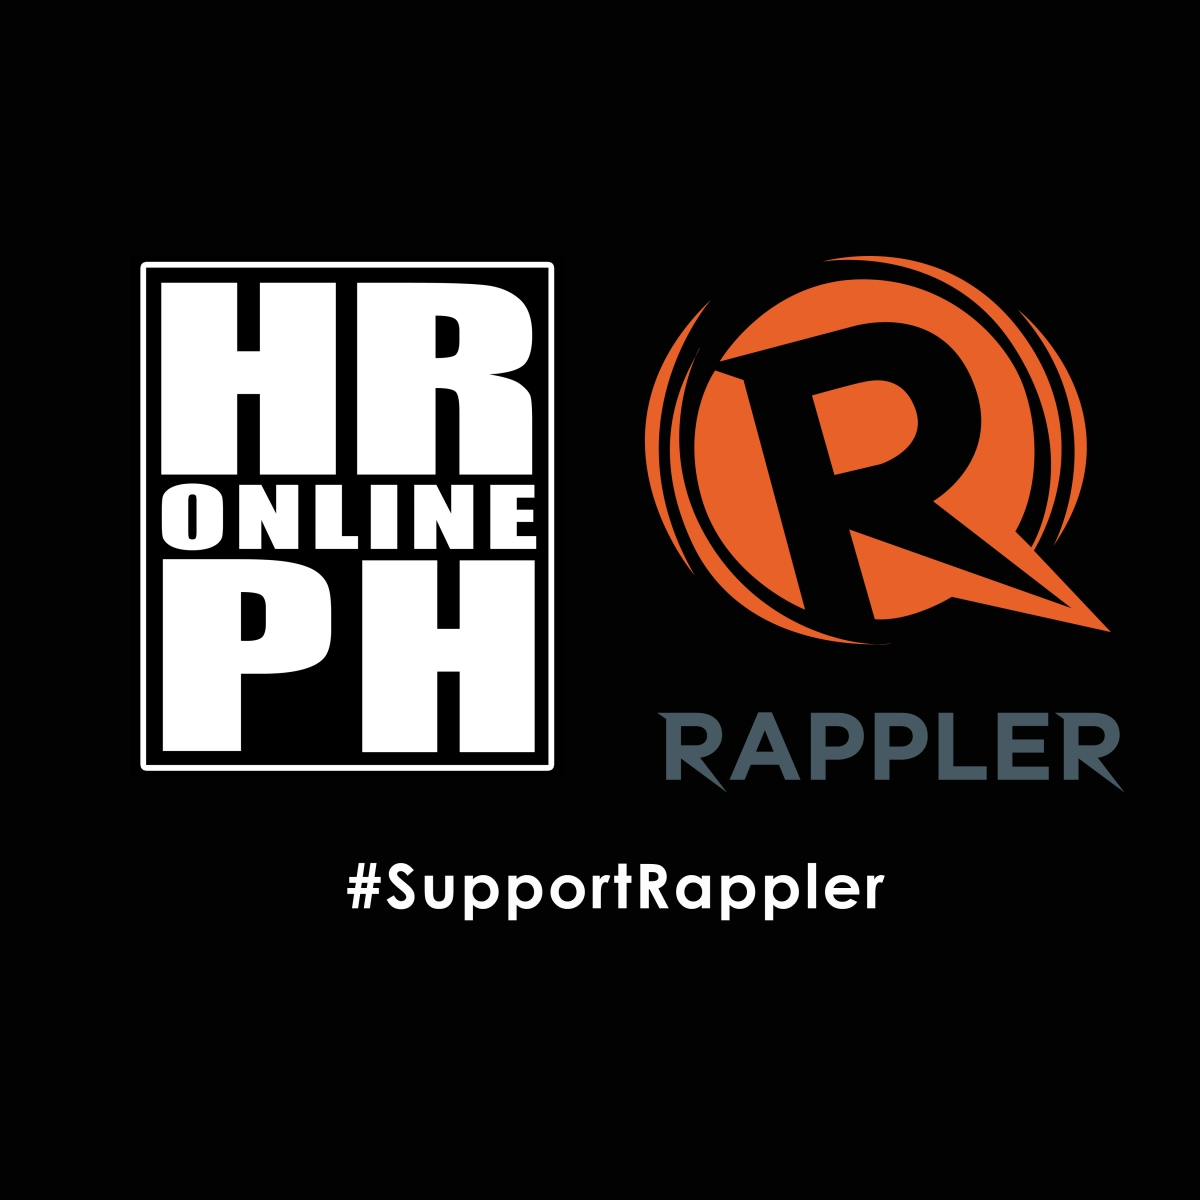 [Statement] Press Freedom is Everyone's Right #StandWithRappler -HRonlinePH.com